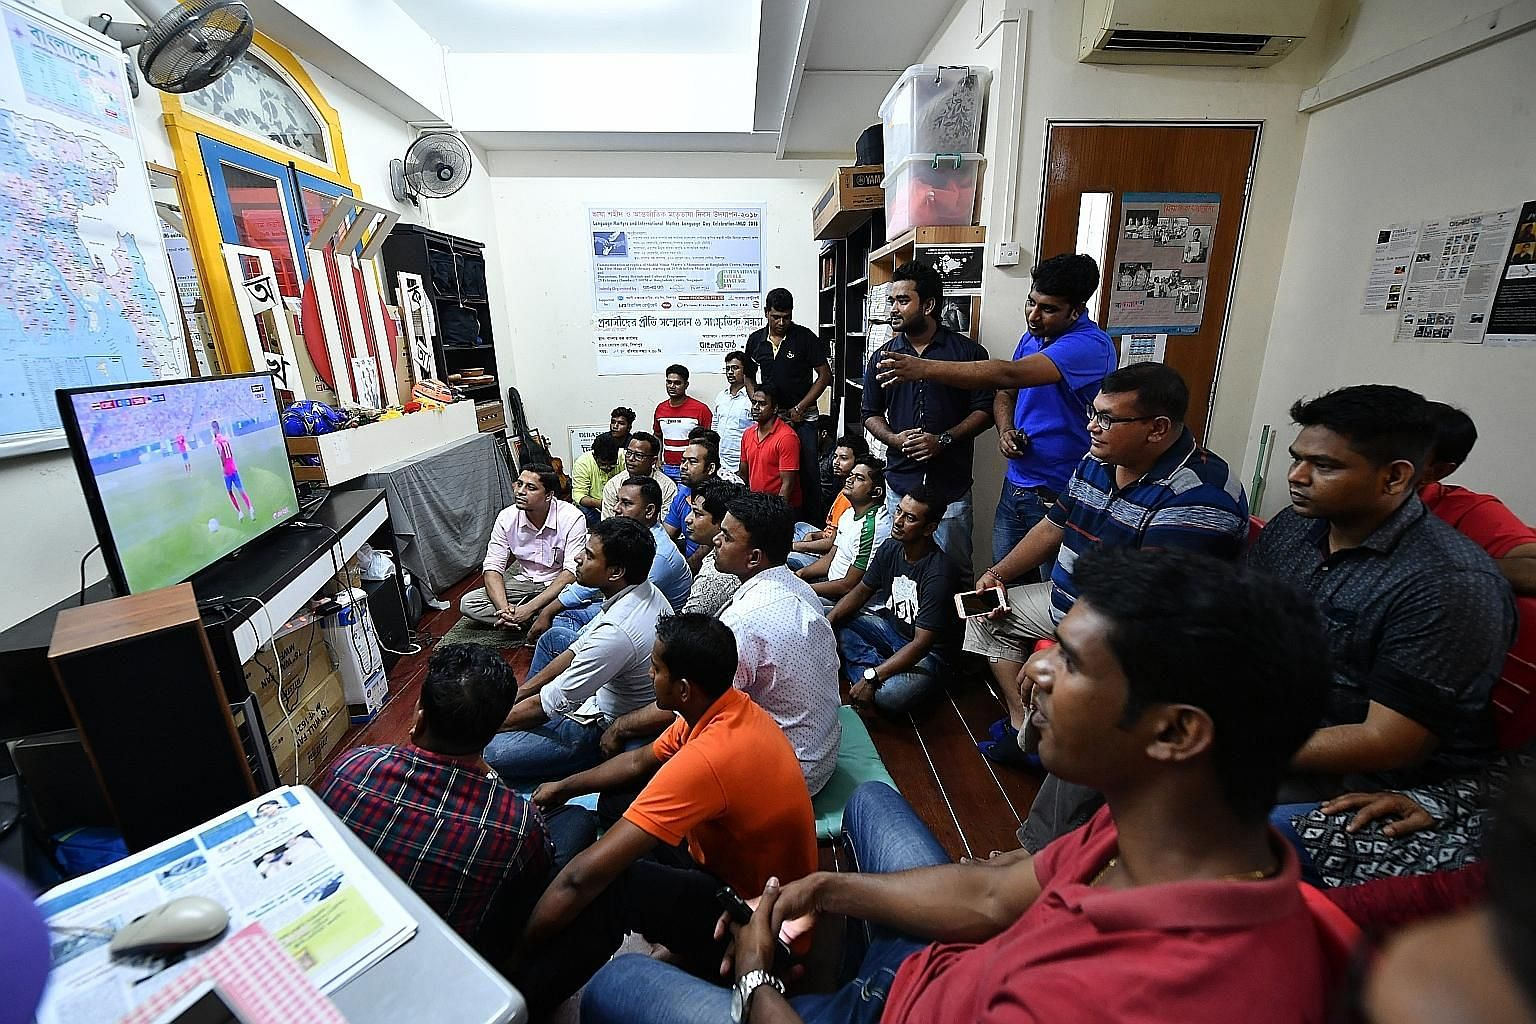 Foreign workers gathering at arts space Dibashram to catch the Costa Rica v Serbia match last night. The venue was provided by owner A.K.M. Mohsin, a Bangladeshi permanent resident. Muslim workers began their Hari Raya celebrations by going to the mo